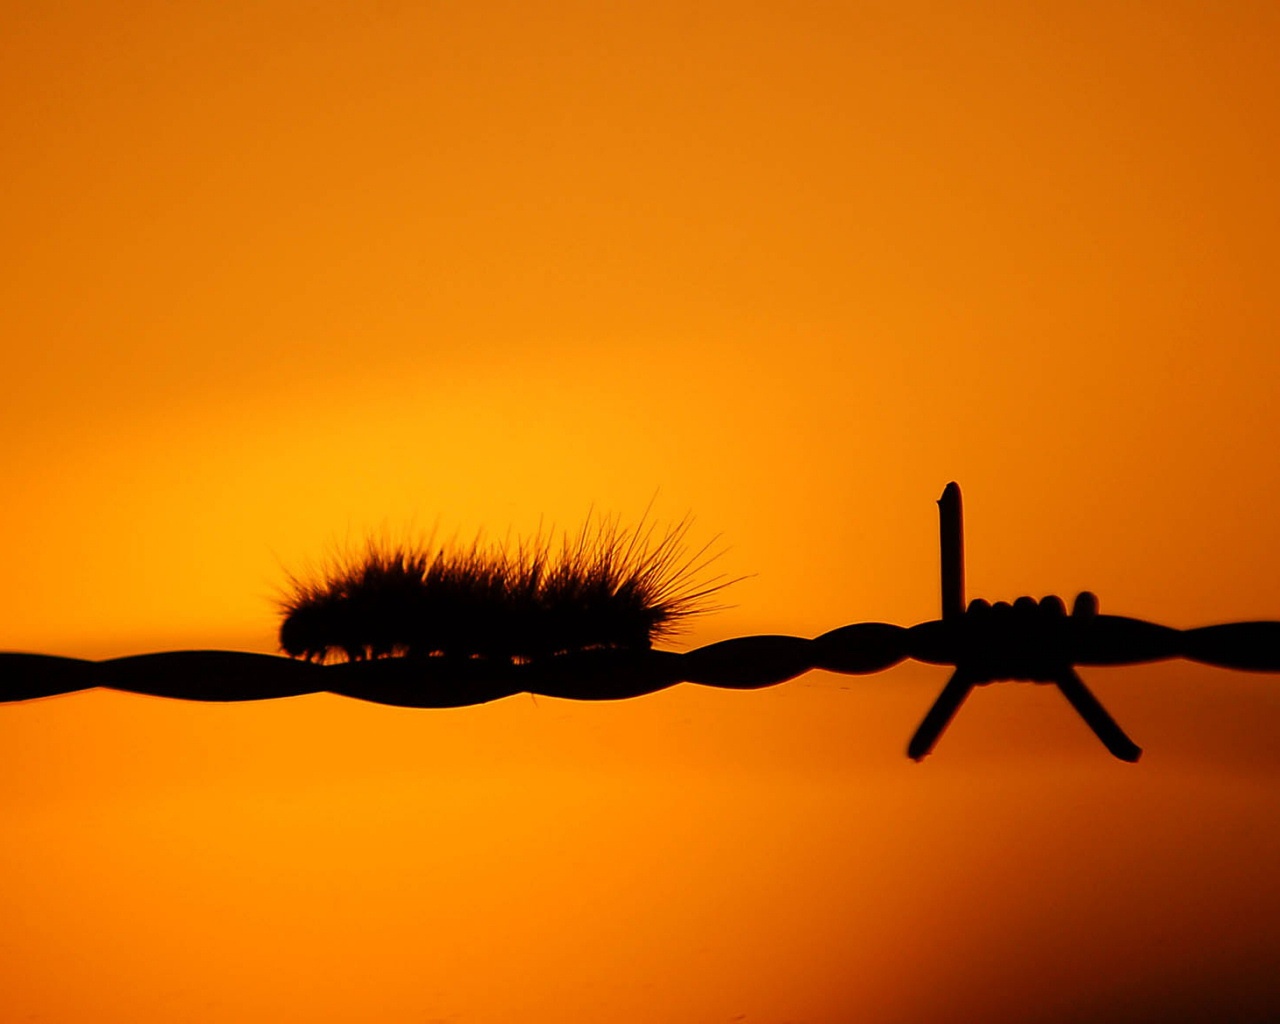 1280x1024 Caterpillar On Fence Desktop Pc And Mac Wallpaper